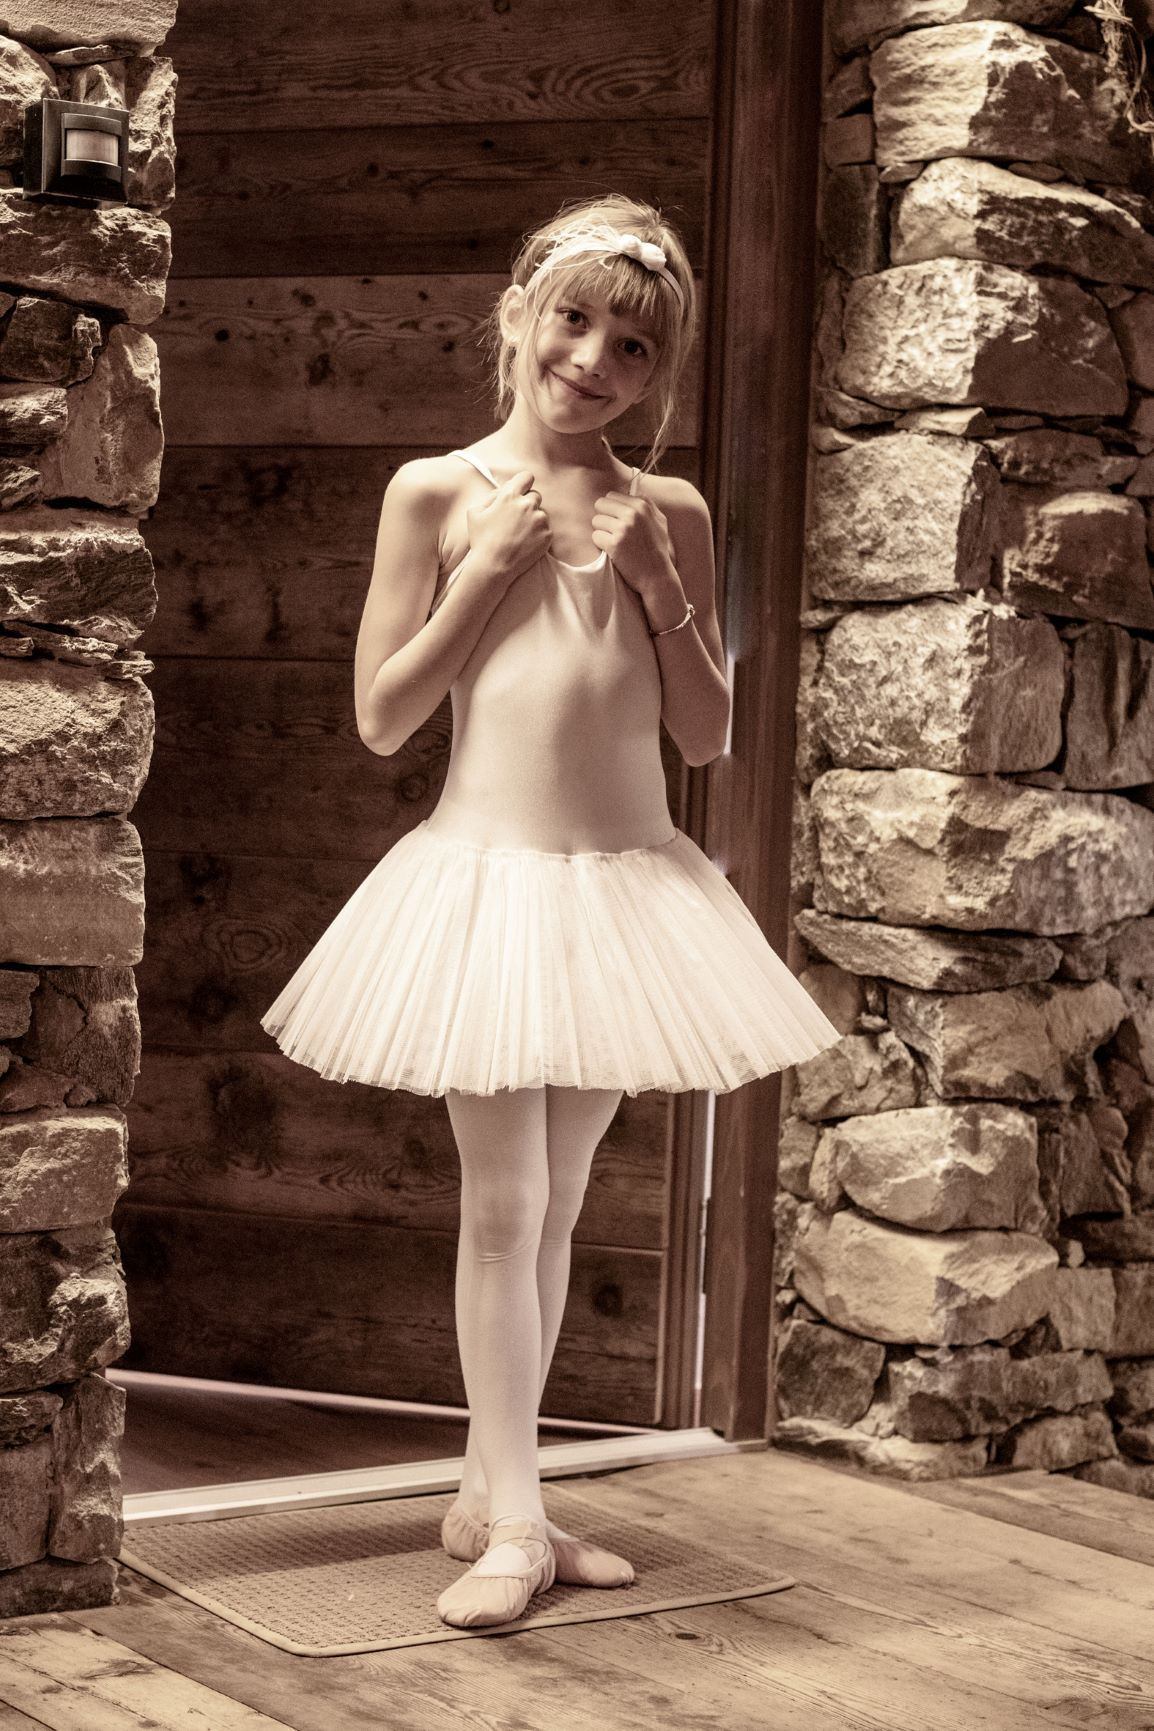 Ballerina in Modified 3rd Position - Photo © Daniela Brugger